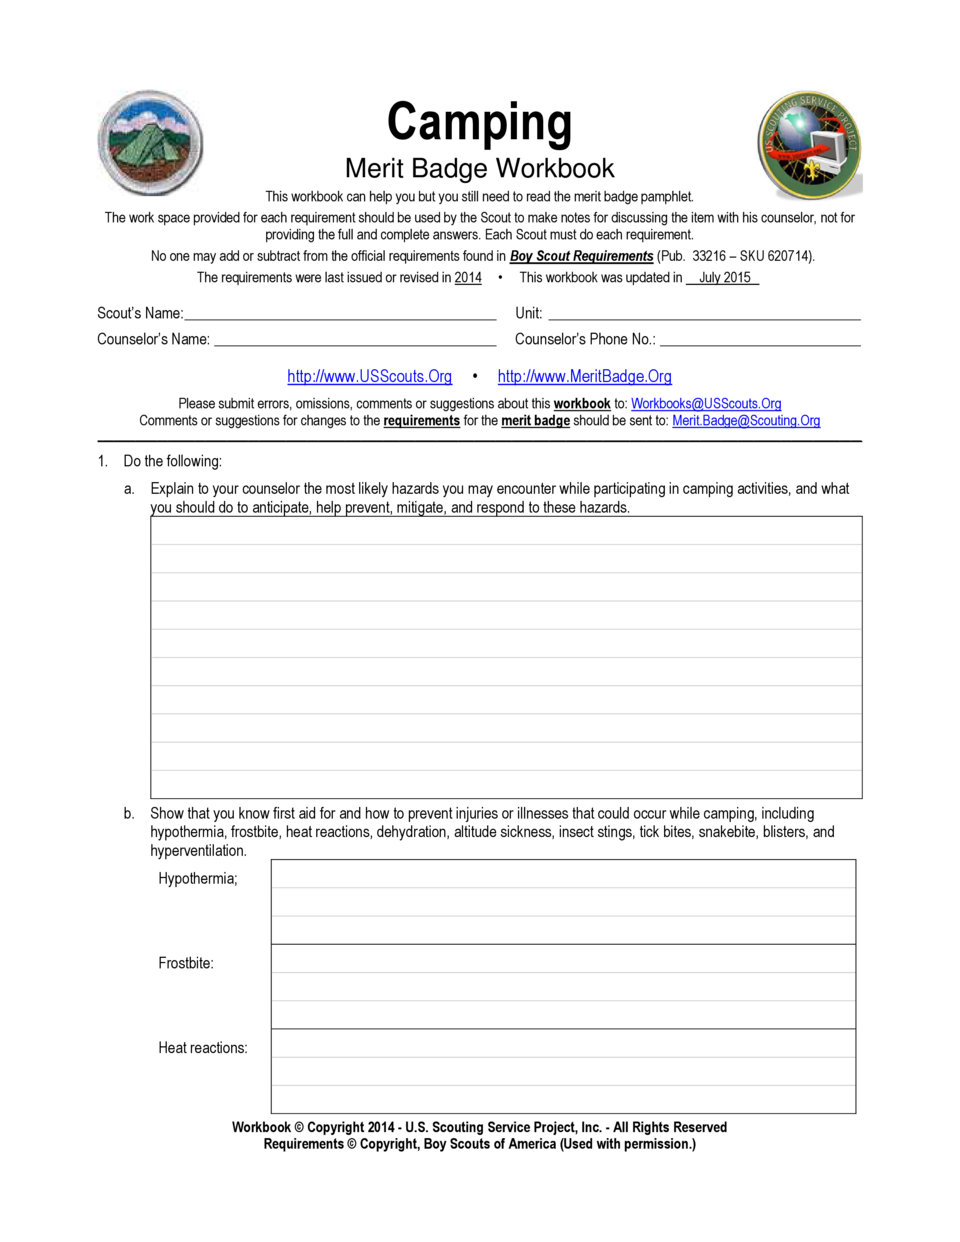 Swimming Merit Badge Worksheet Free Worksheets Library | Download ...